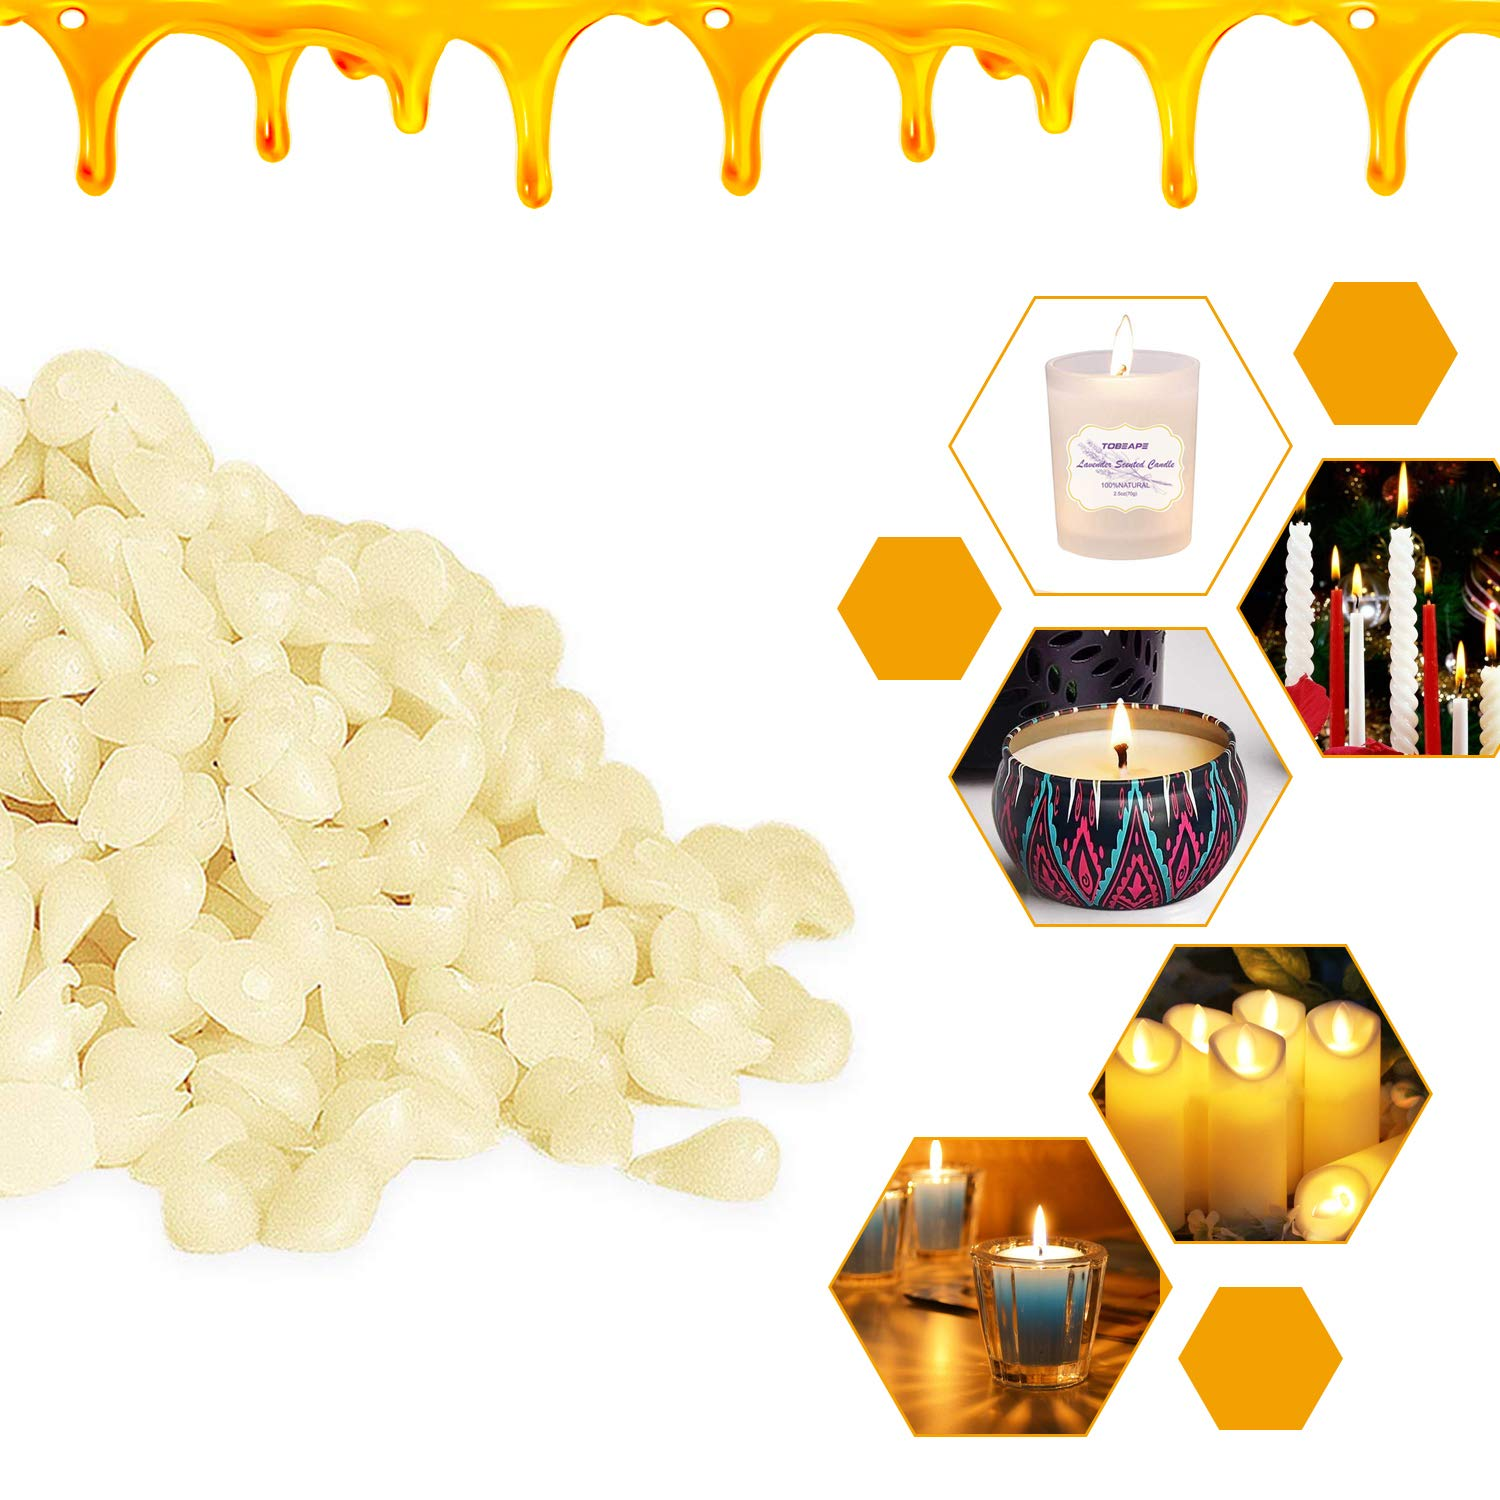 Tobeape White Beeswax Pellets 10LB 100/% Pure and Natural